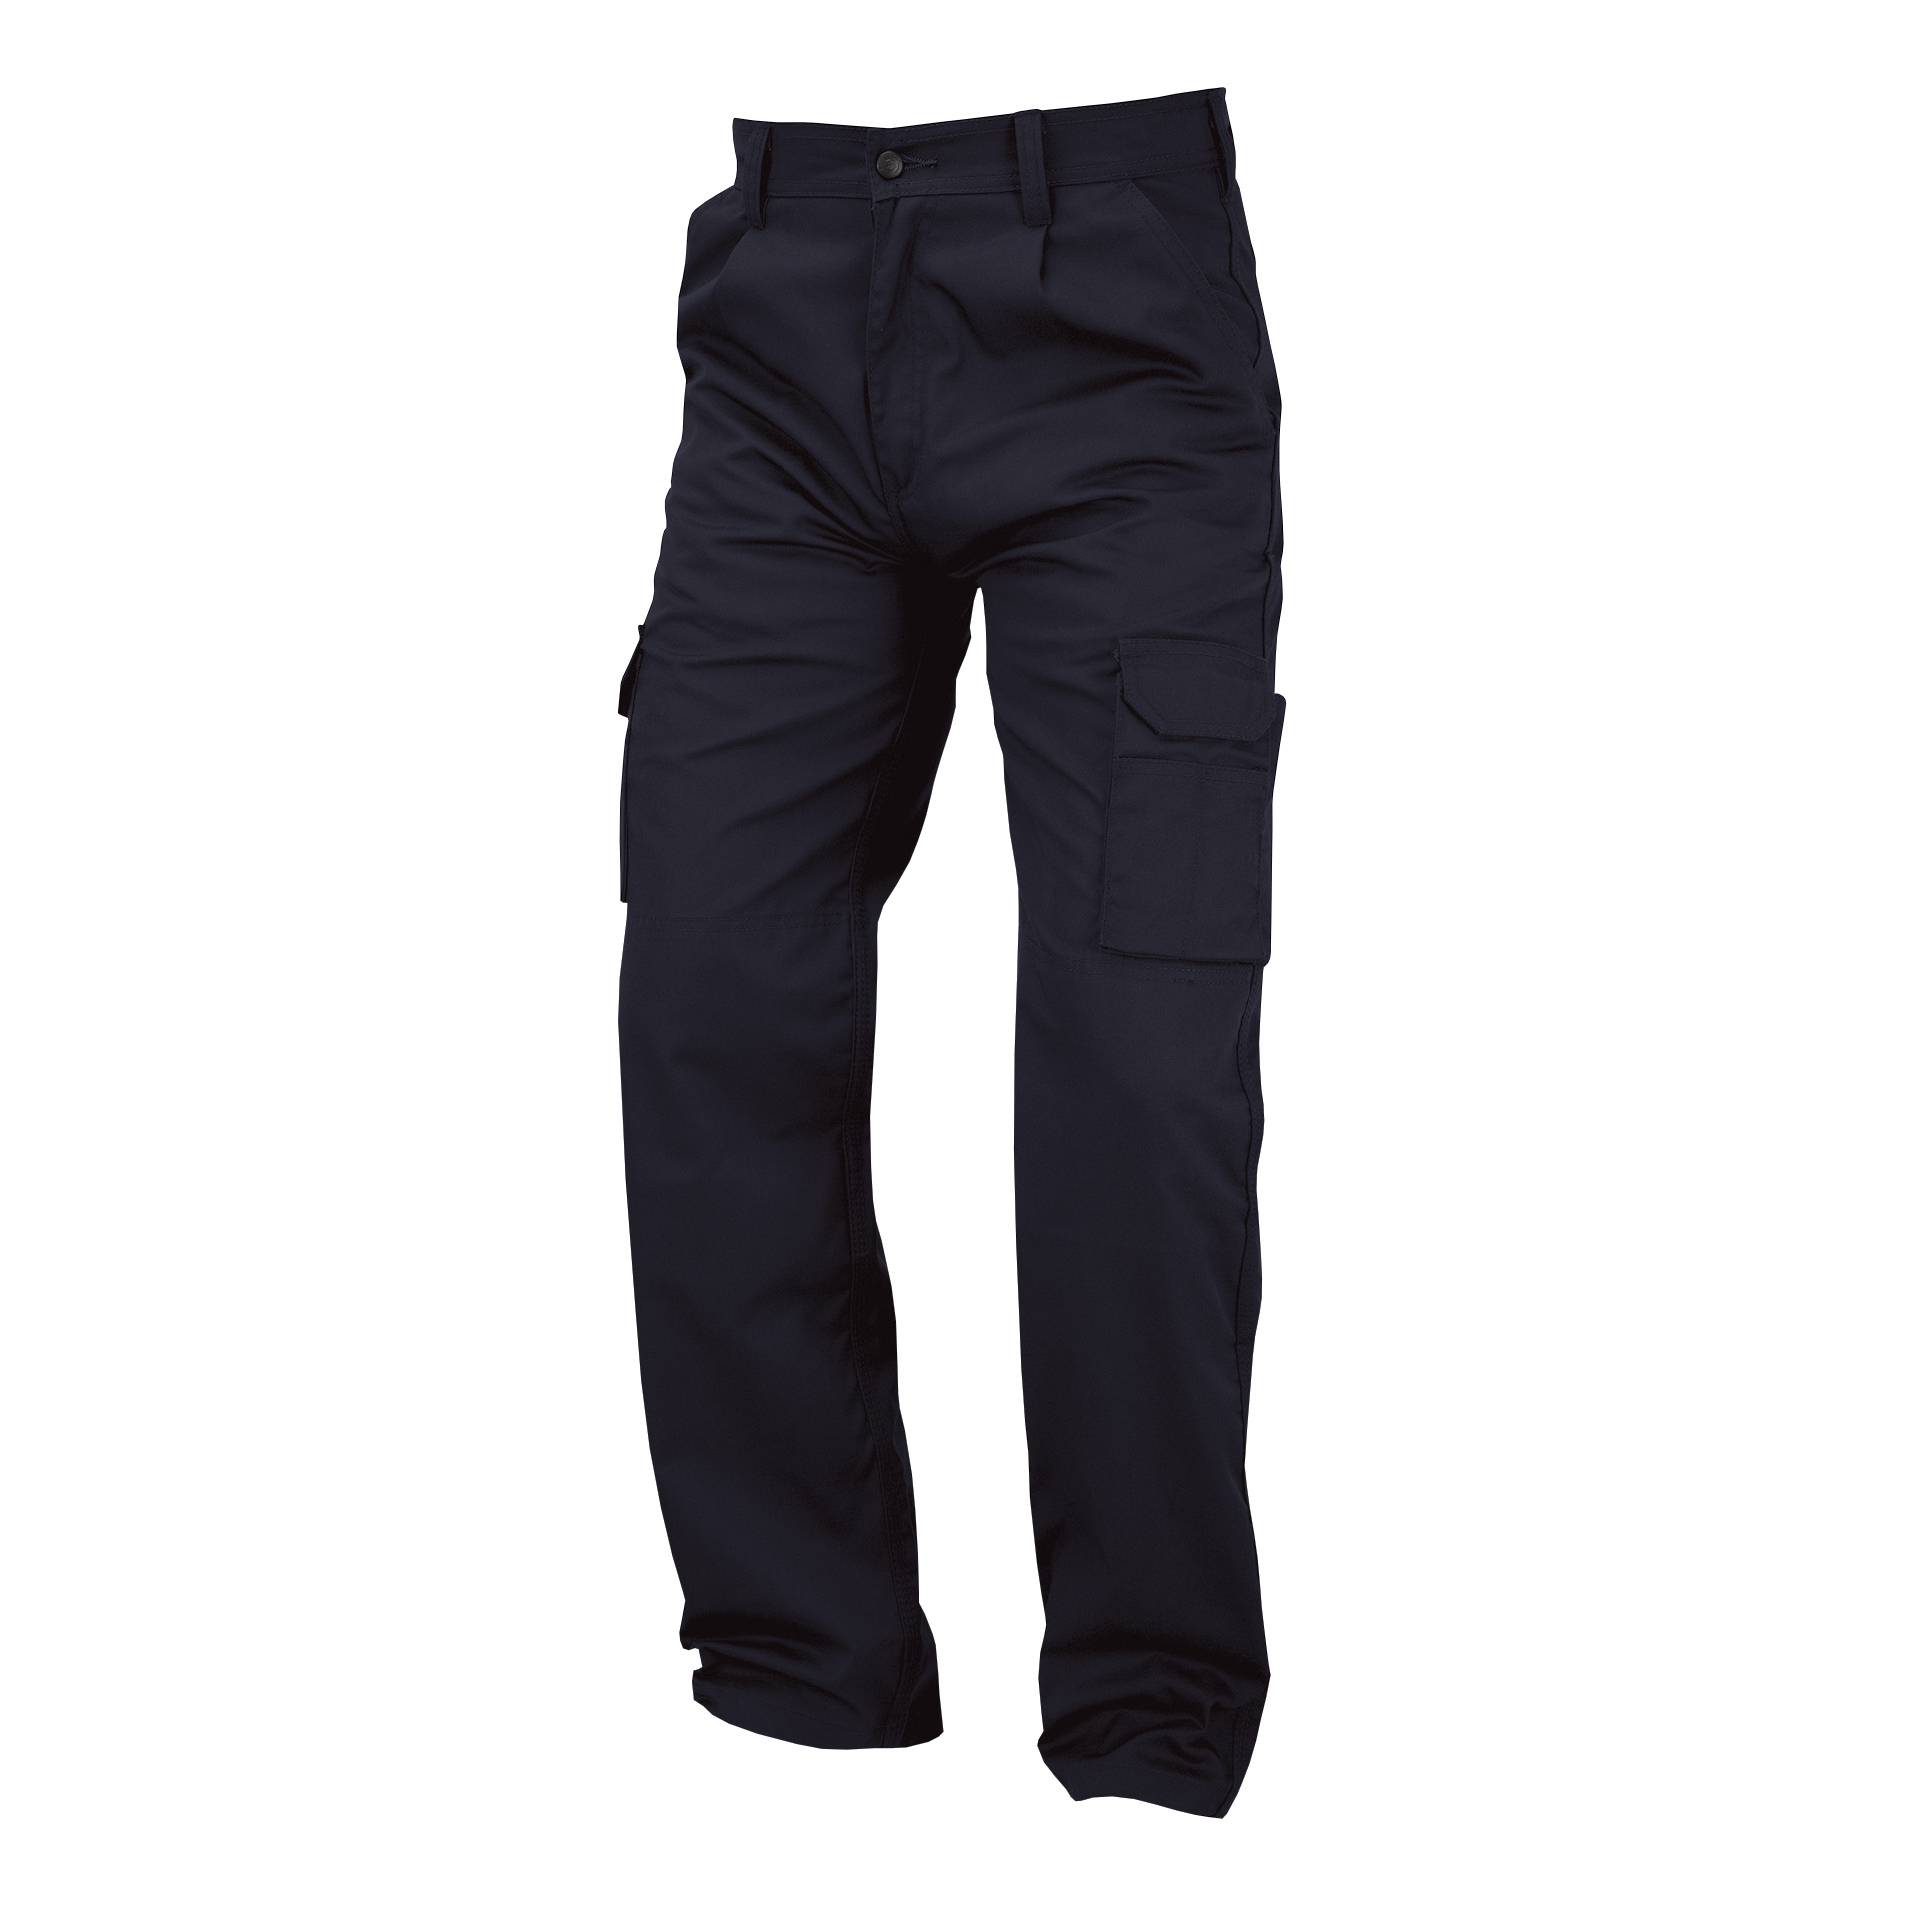 Combat Trousers Polycotton with Pockets Tall Navy 34inch 1-3 Days Lead Time